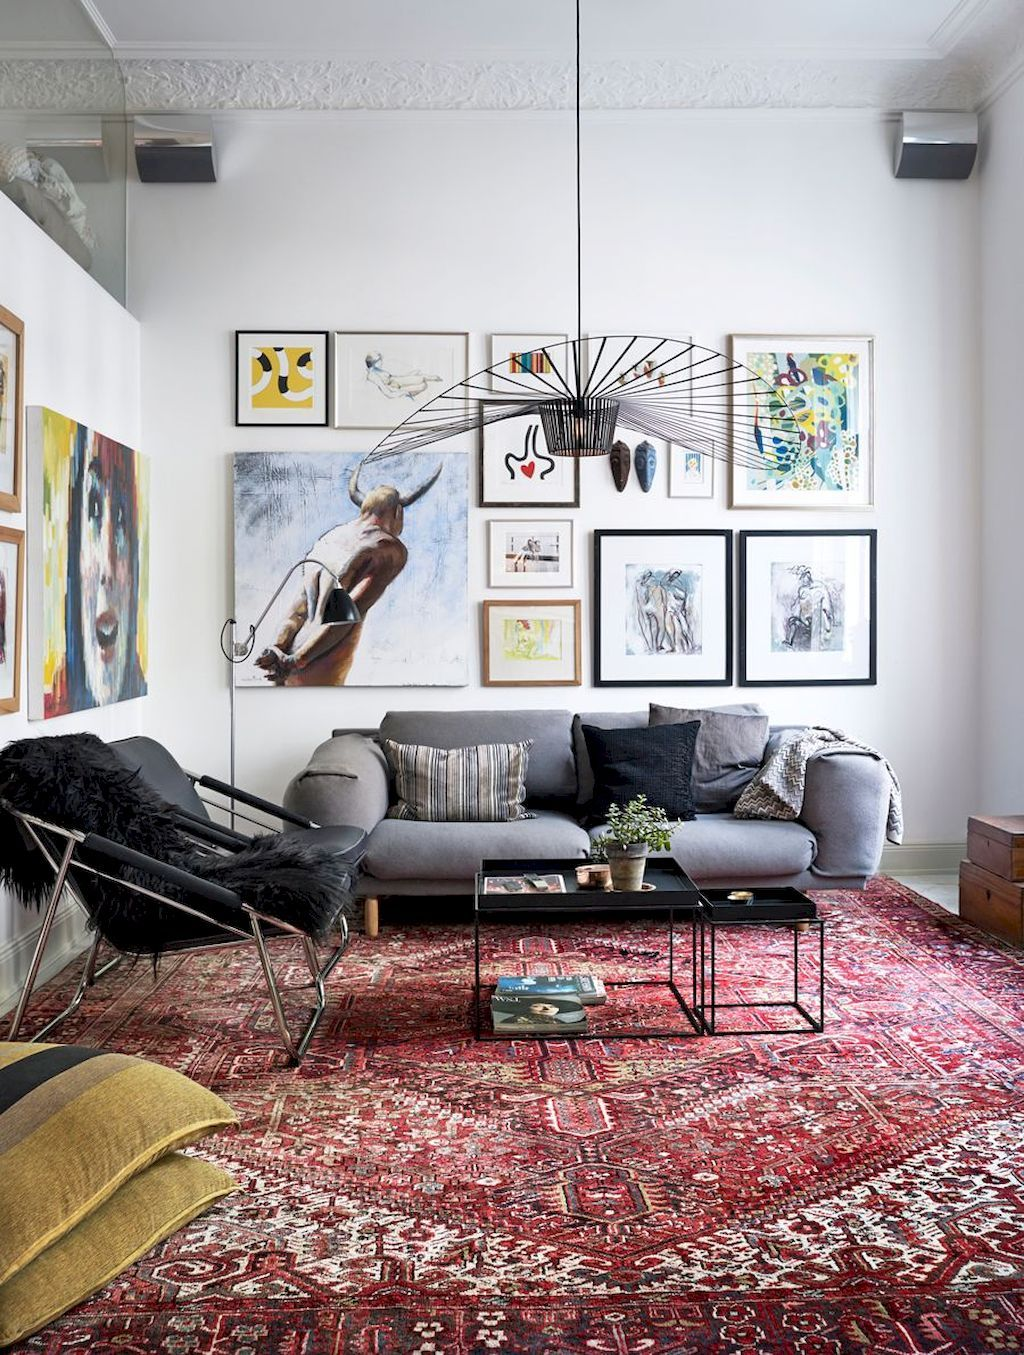 Cool Beautiful Scandinavian Apartment Design For A Simple Lifestyle Https Carrib Rugs In Living Room Scandinavian Design Living Room Persian Rug Living Room